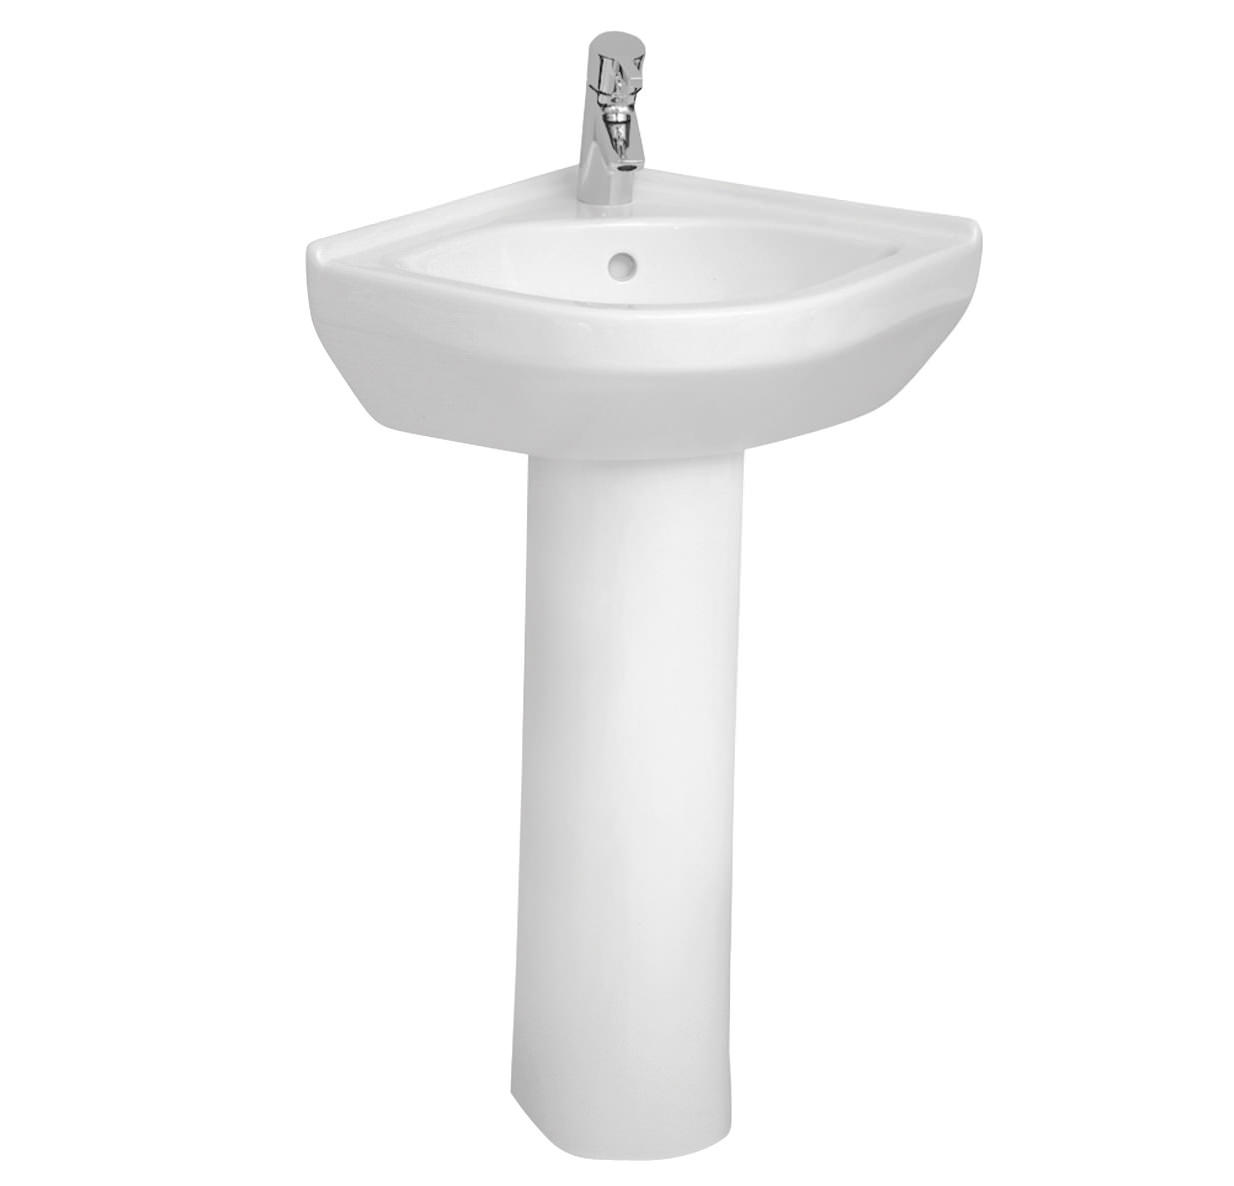 ... basins corner basins vitra s50 corner basin 400mm with full pedestal